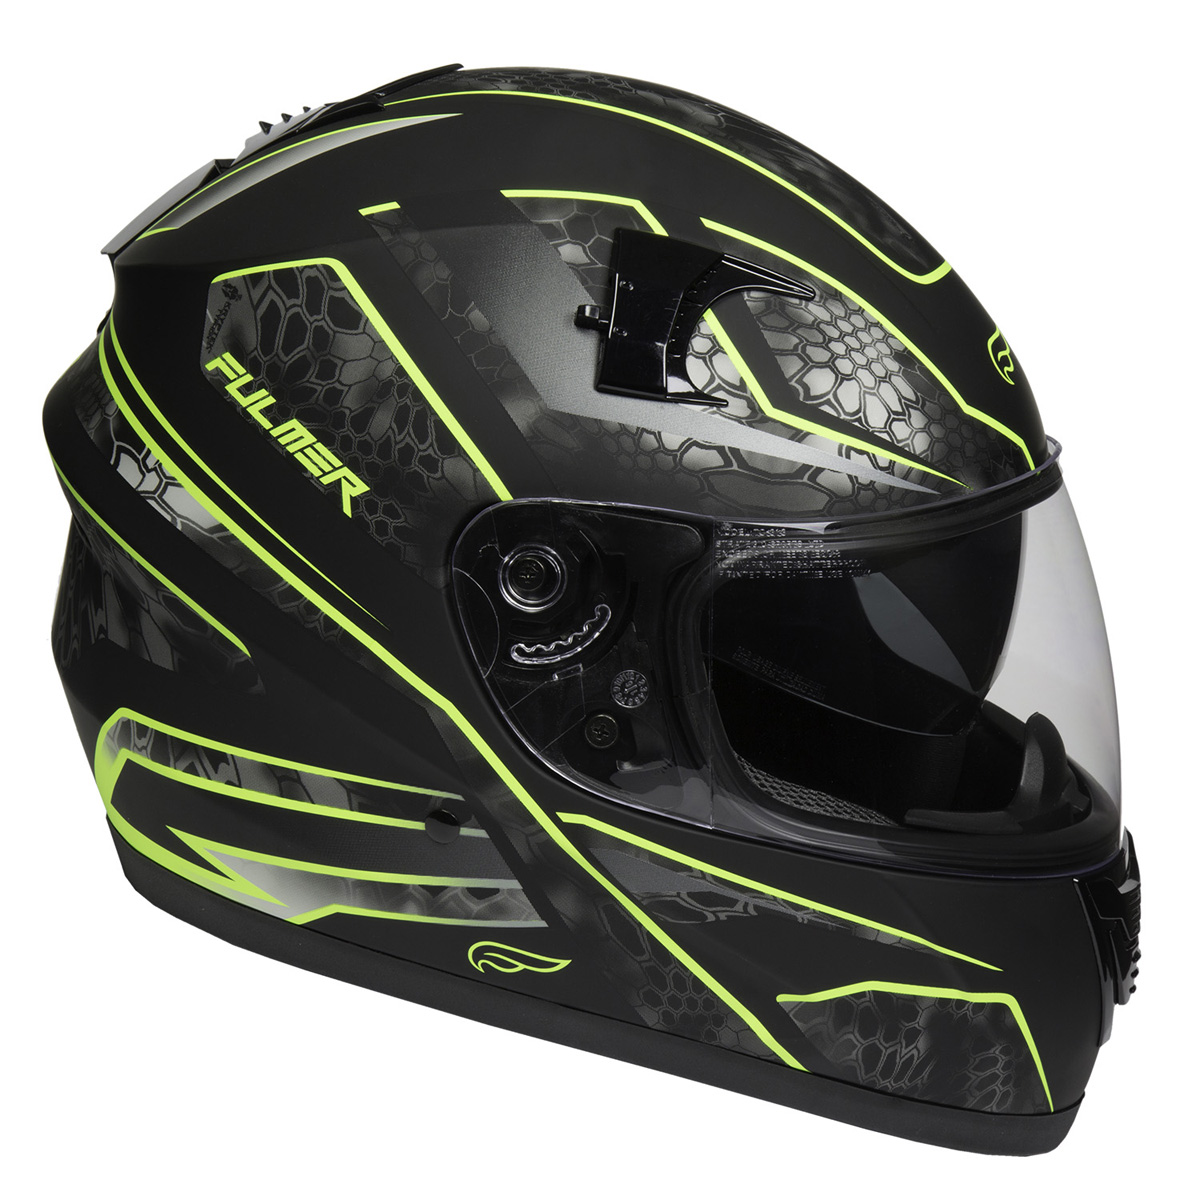 Fulmer Adult Full Face Motorcycle Helmet 151 Pulse DOT Approved Street Bike